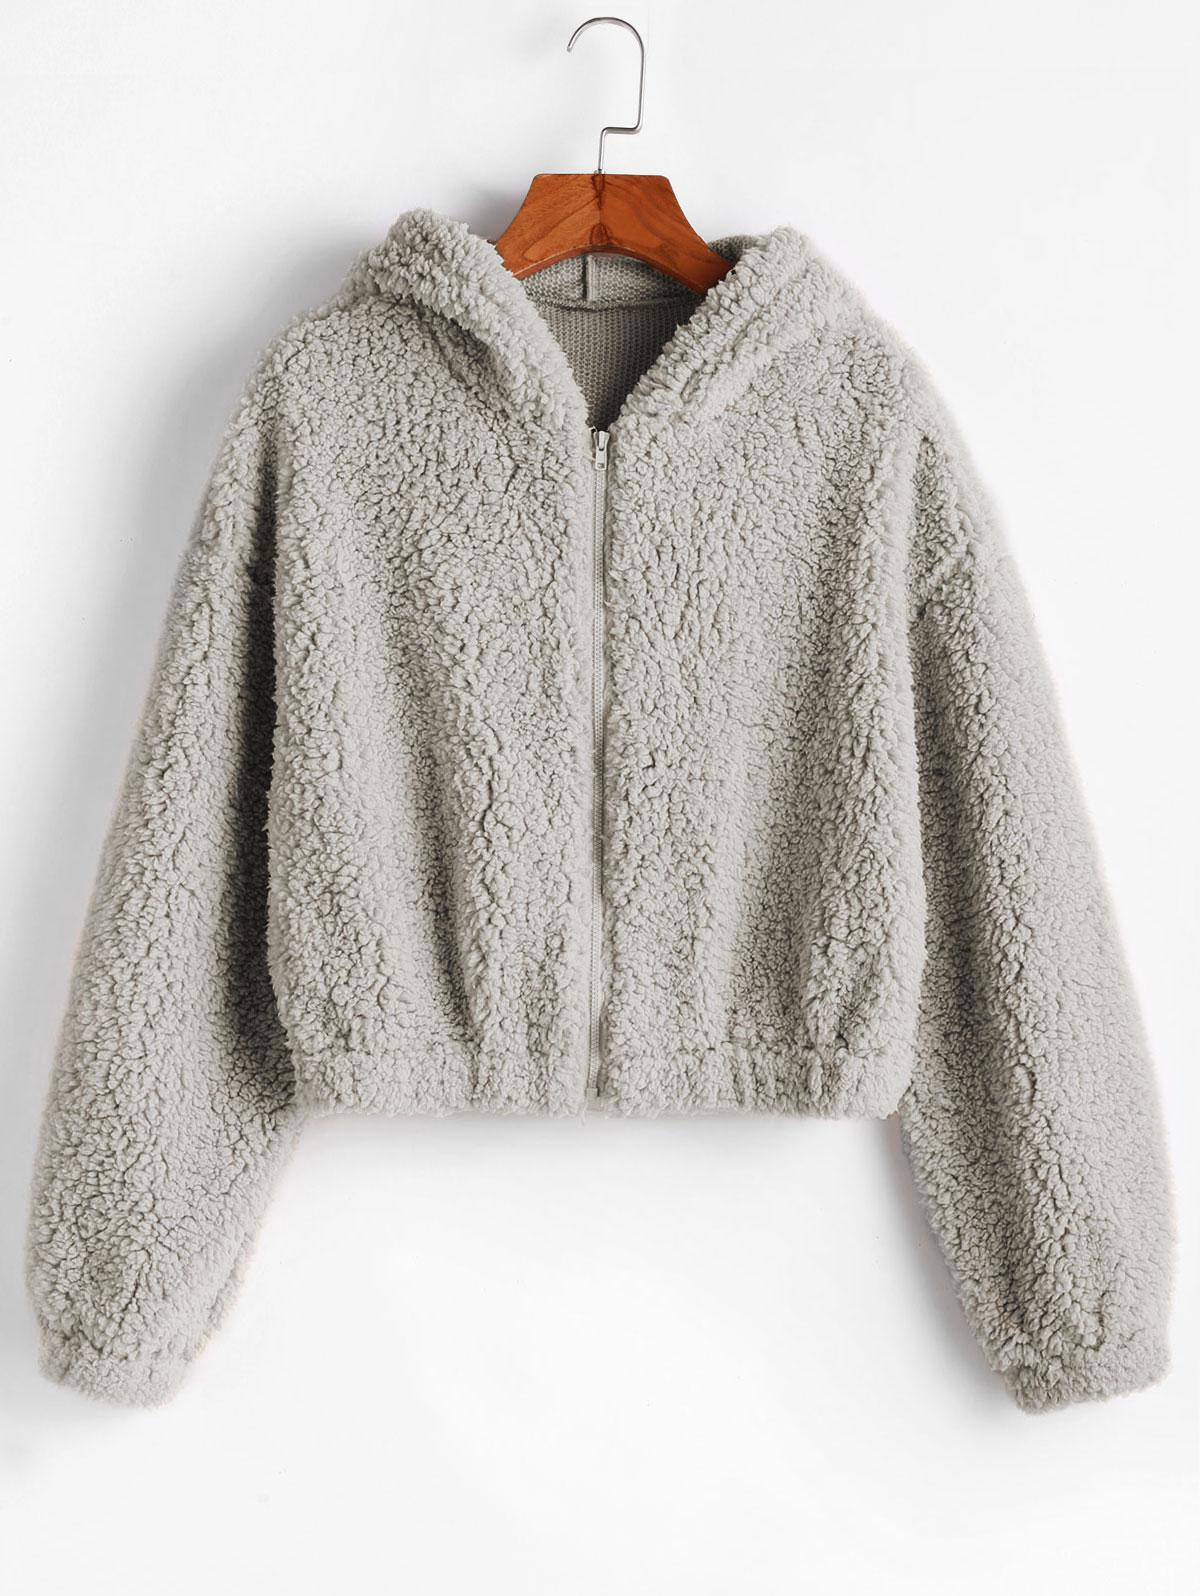 ZAFUL Hooded Zip Up Fluffy Teddy Jacket